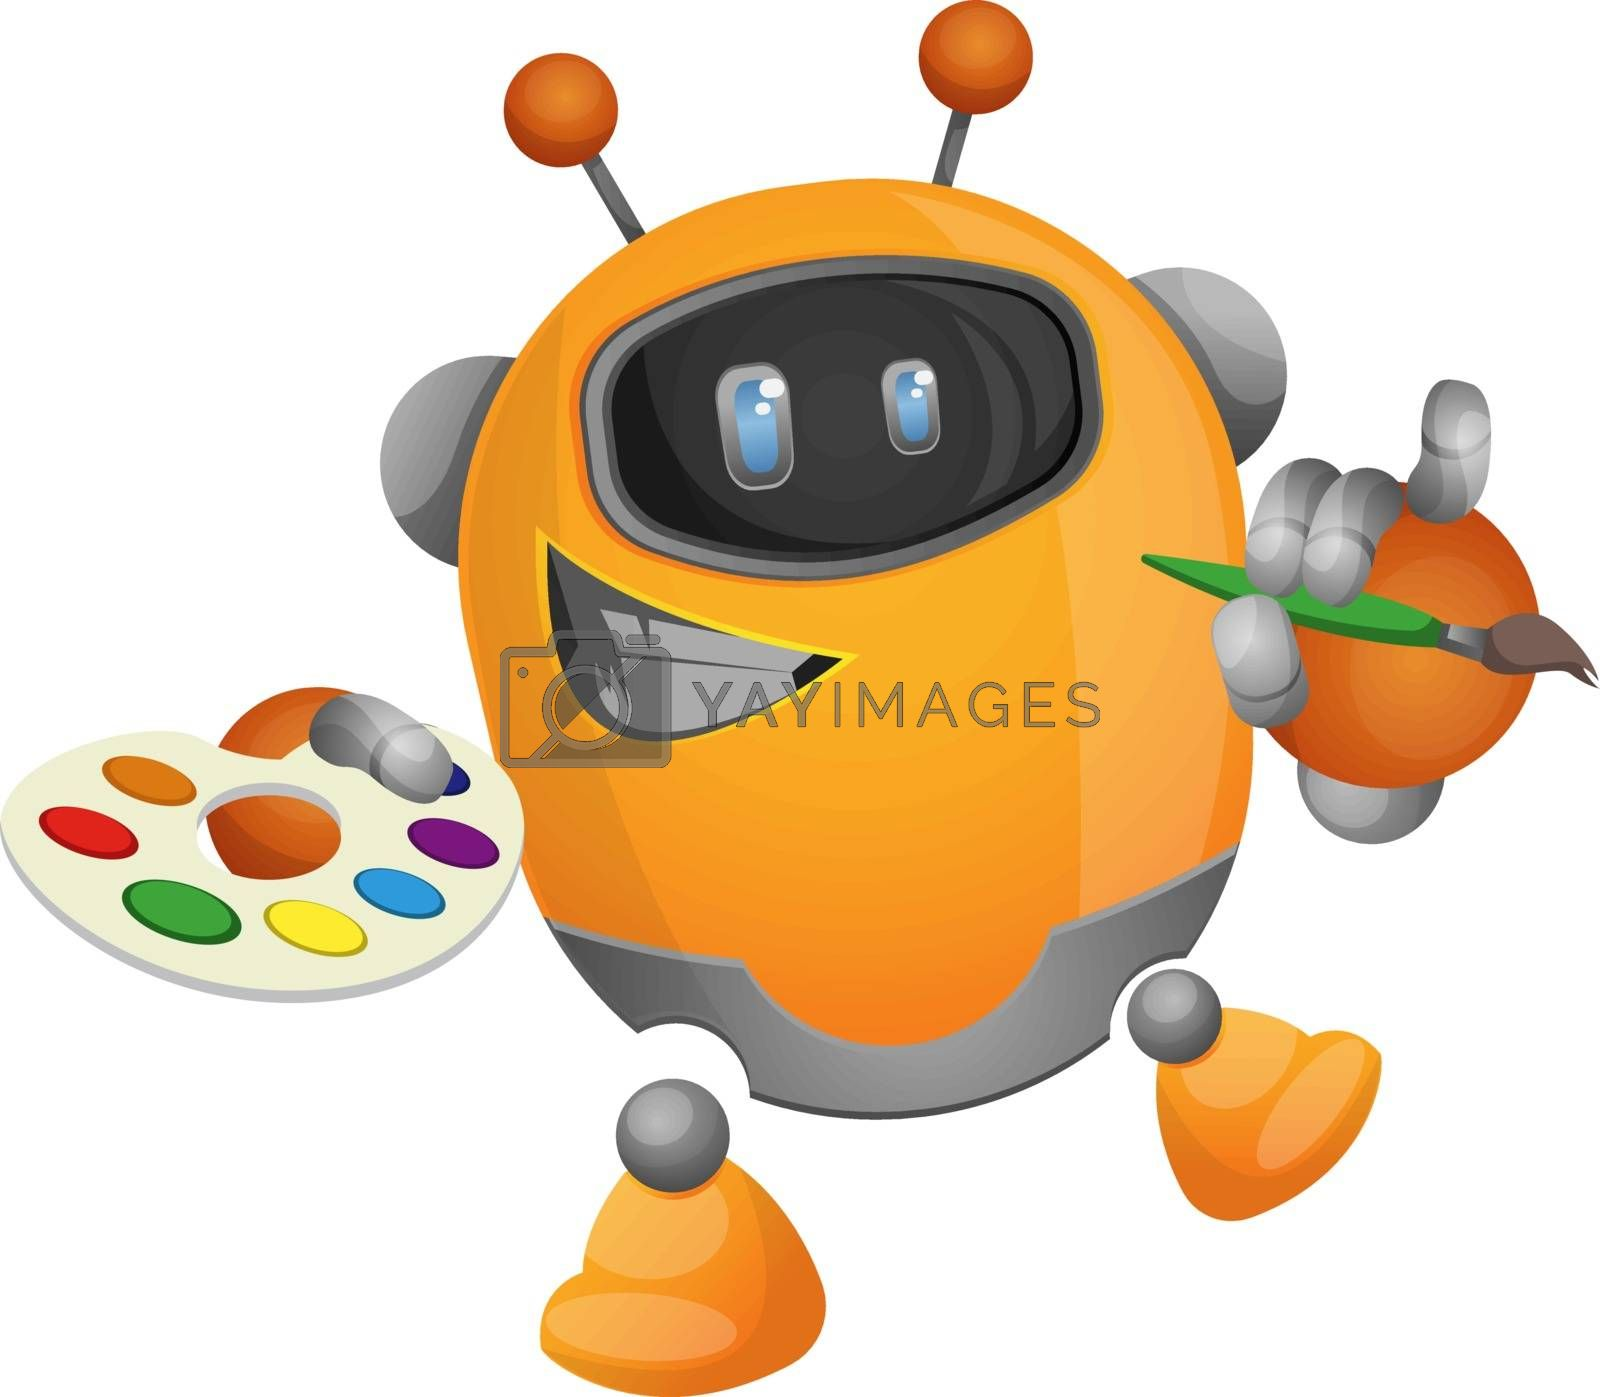 Royalty free image of Cartoon robot painter illustration vector on white background by Morphart